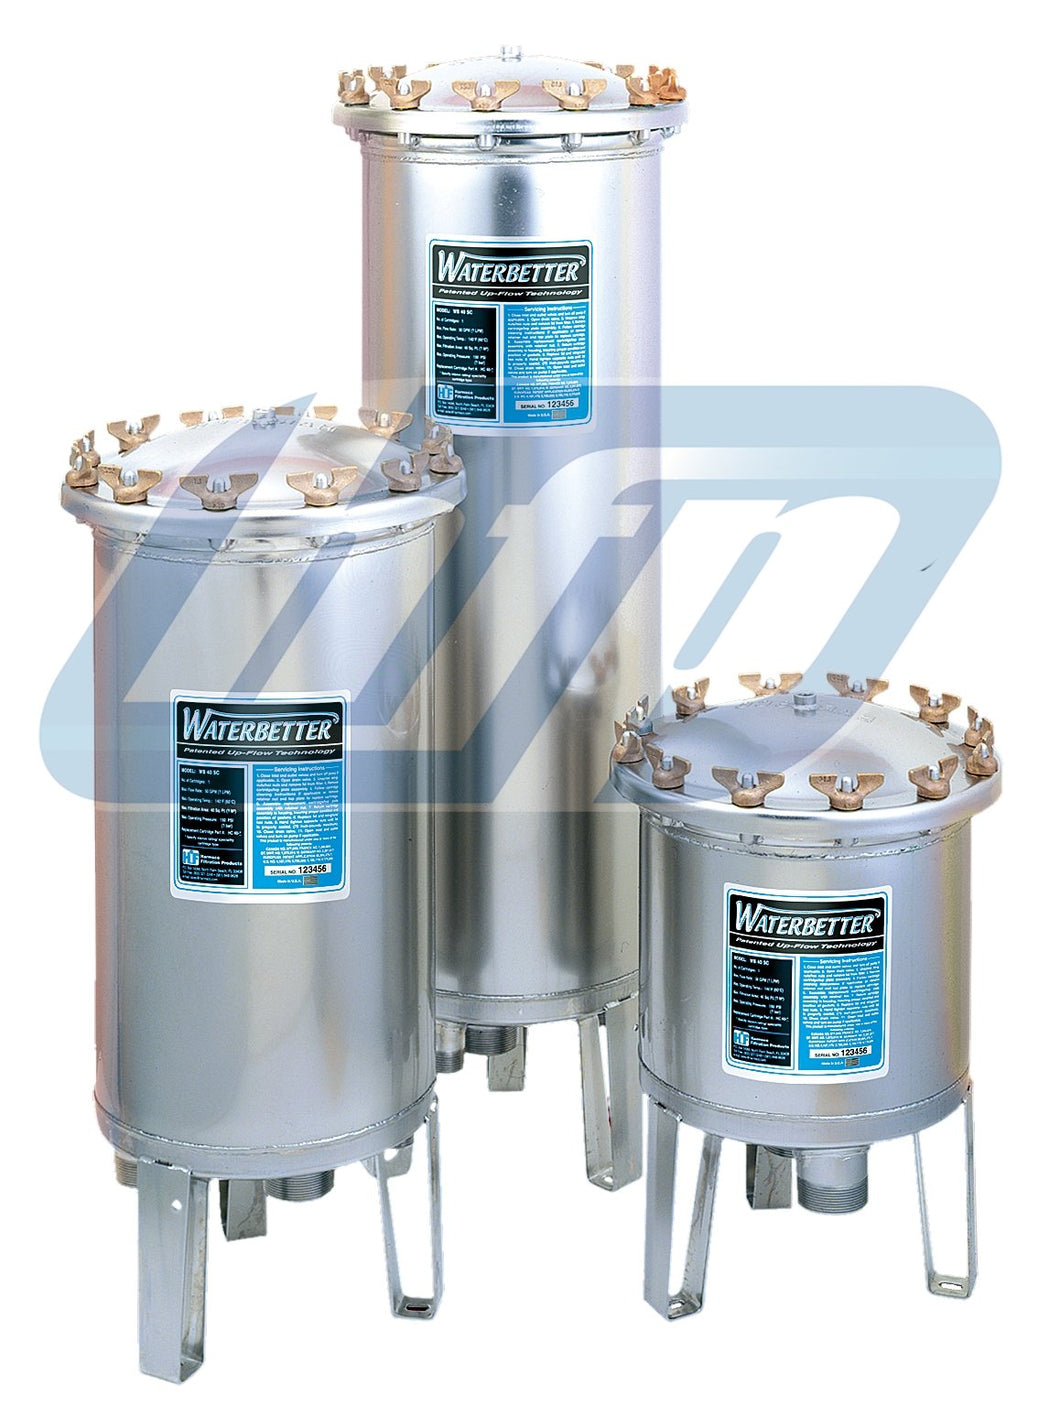 Harmsco Waterbetter 90 Housing - 100 gpm - WB90SC2 - Efilters.ca